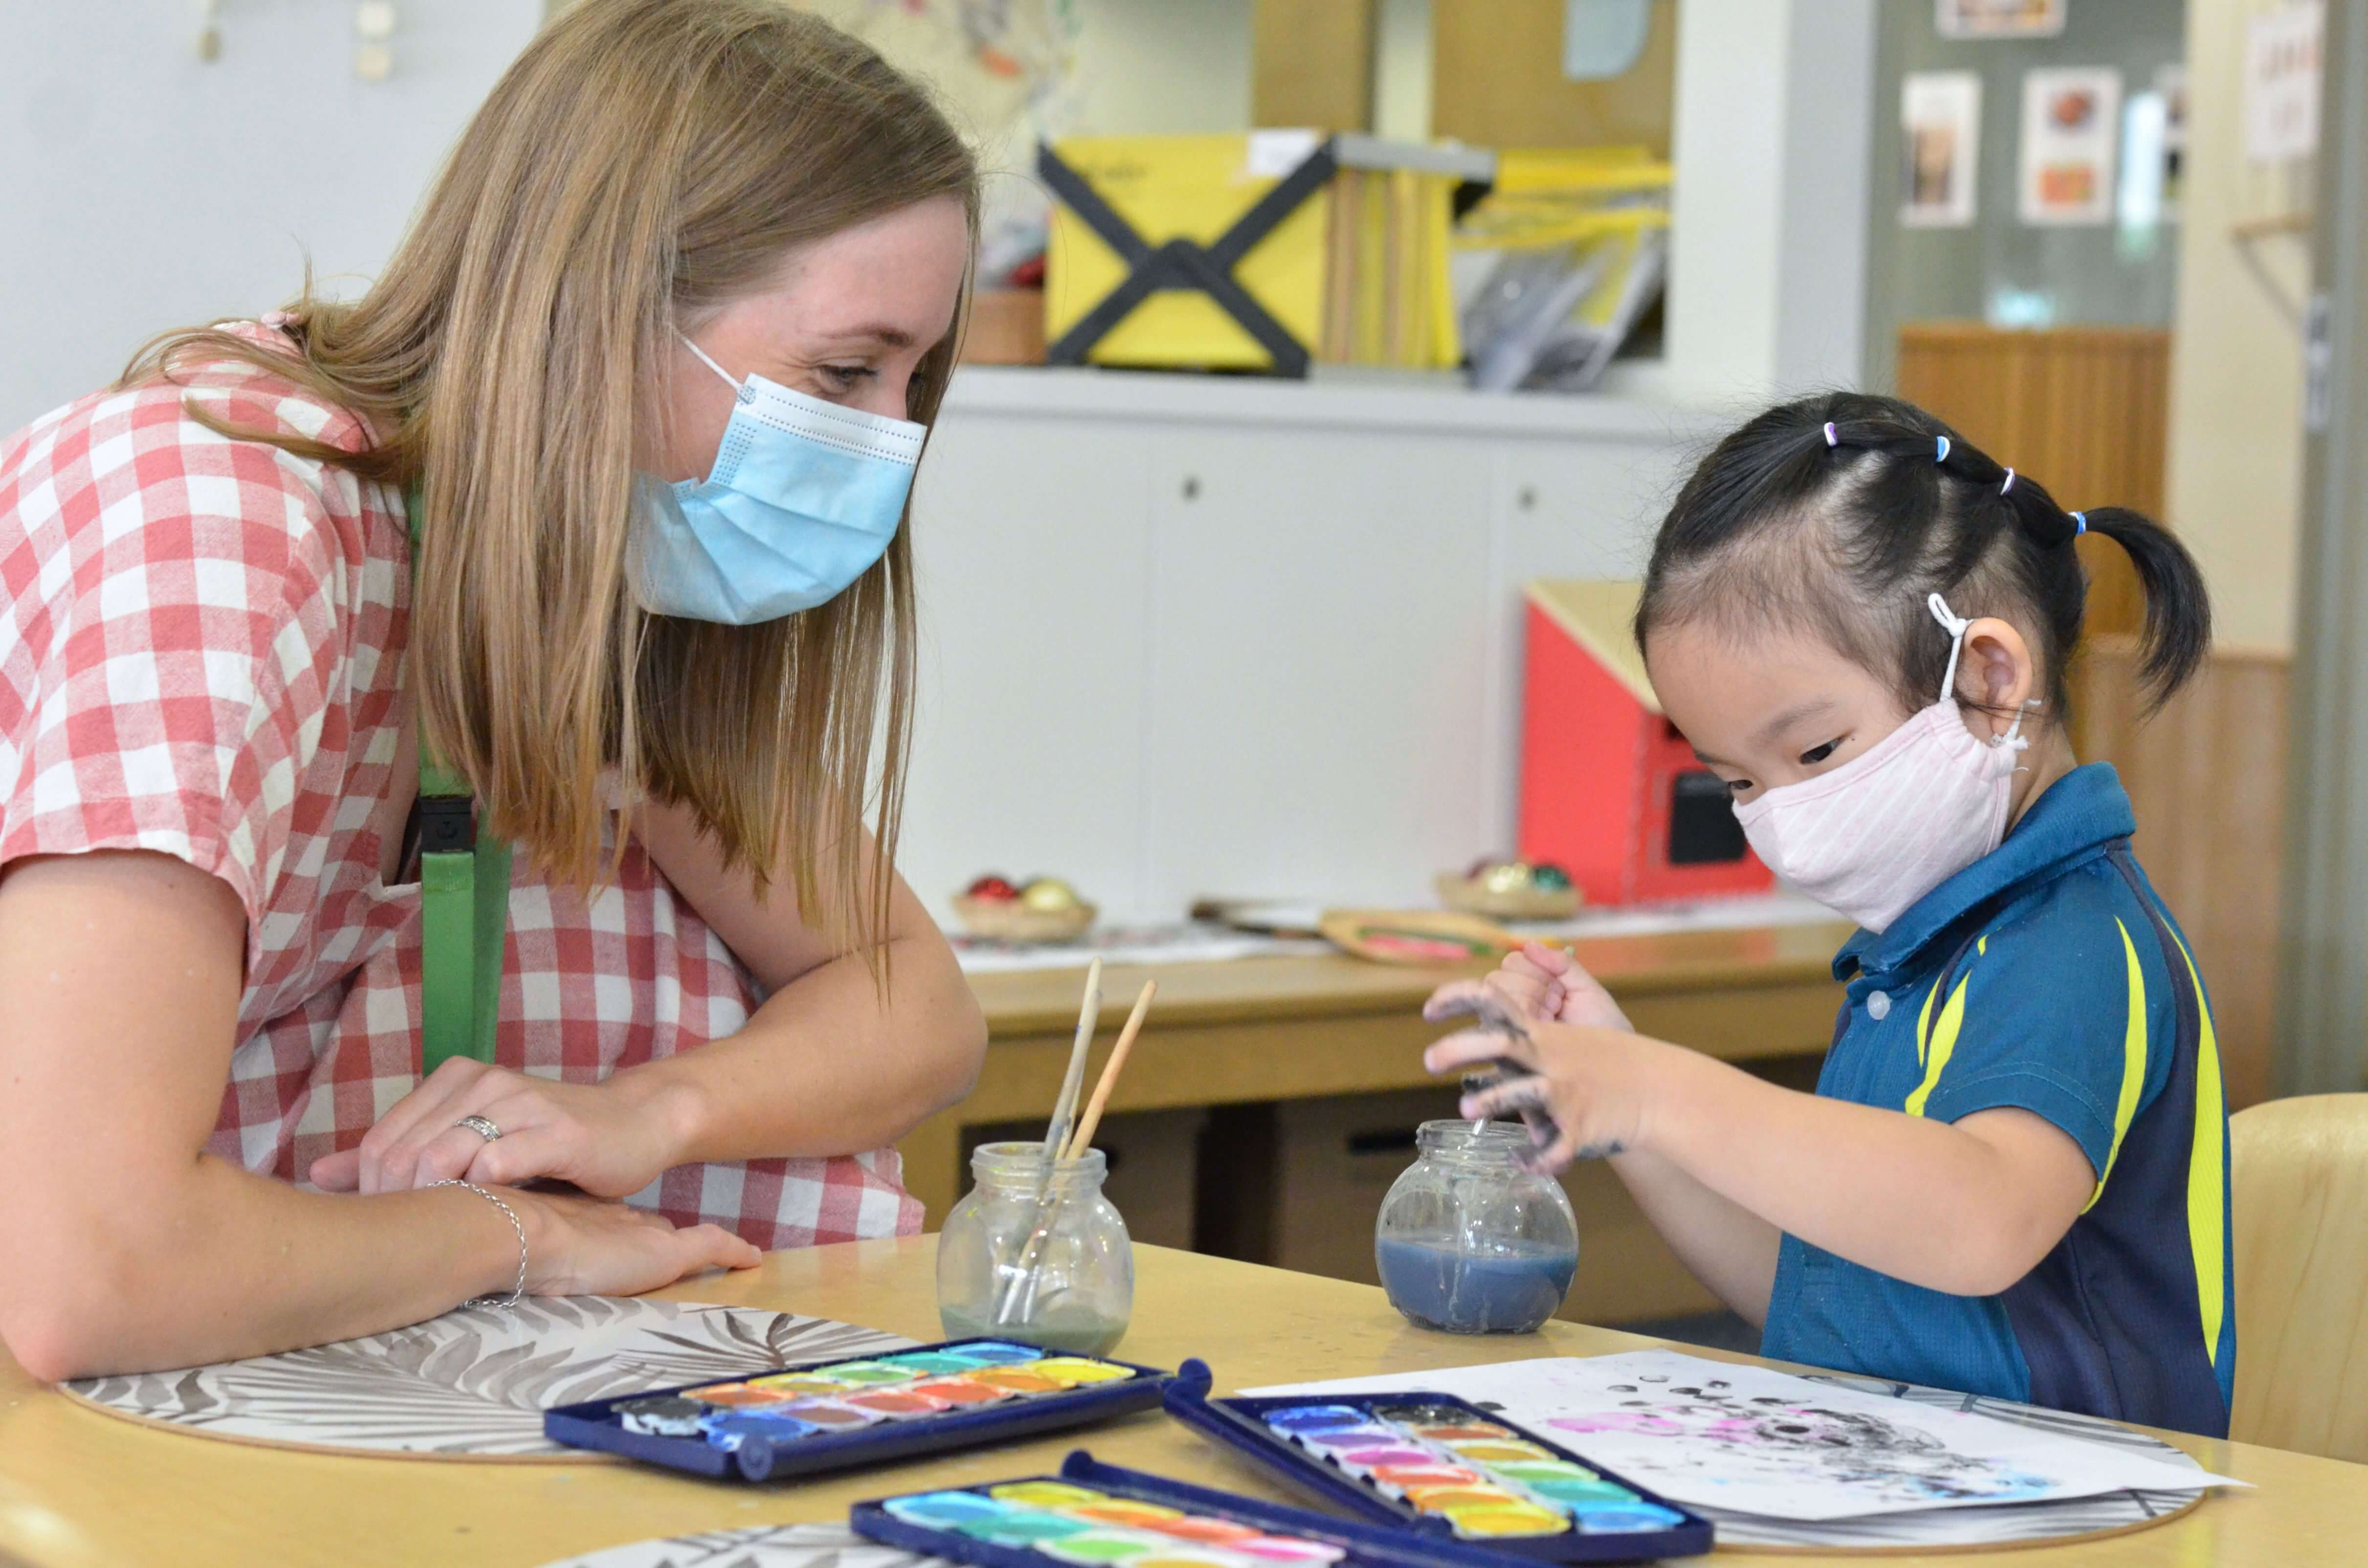 Australian International School Singapore: An Early Learning Village that educates and inspires